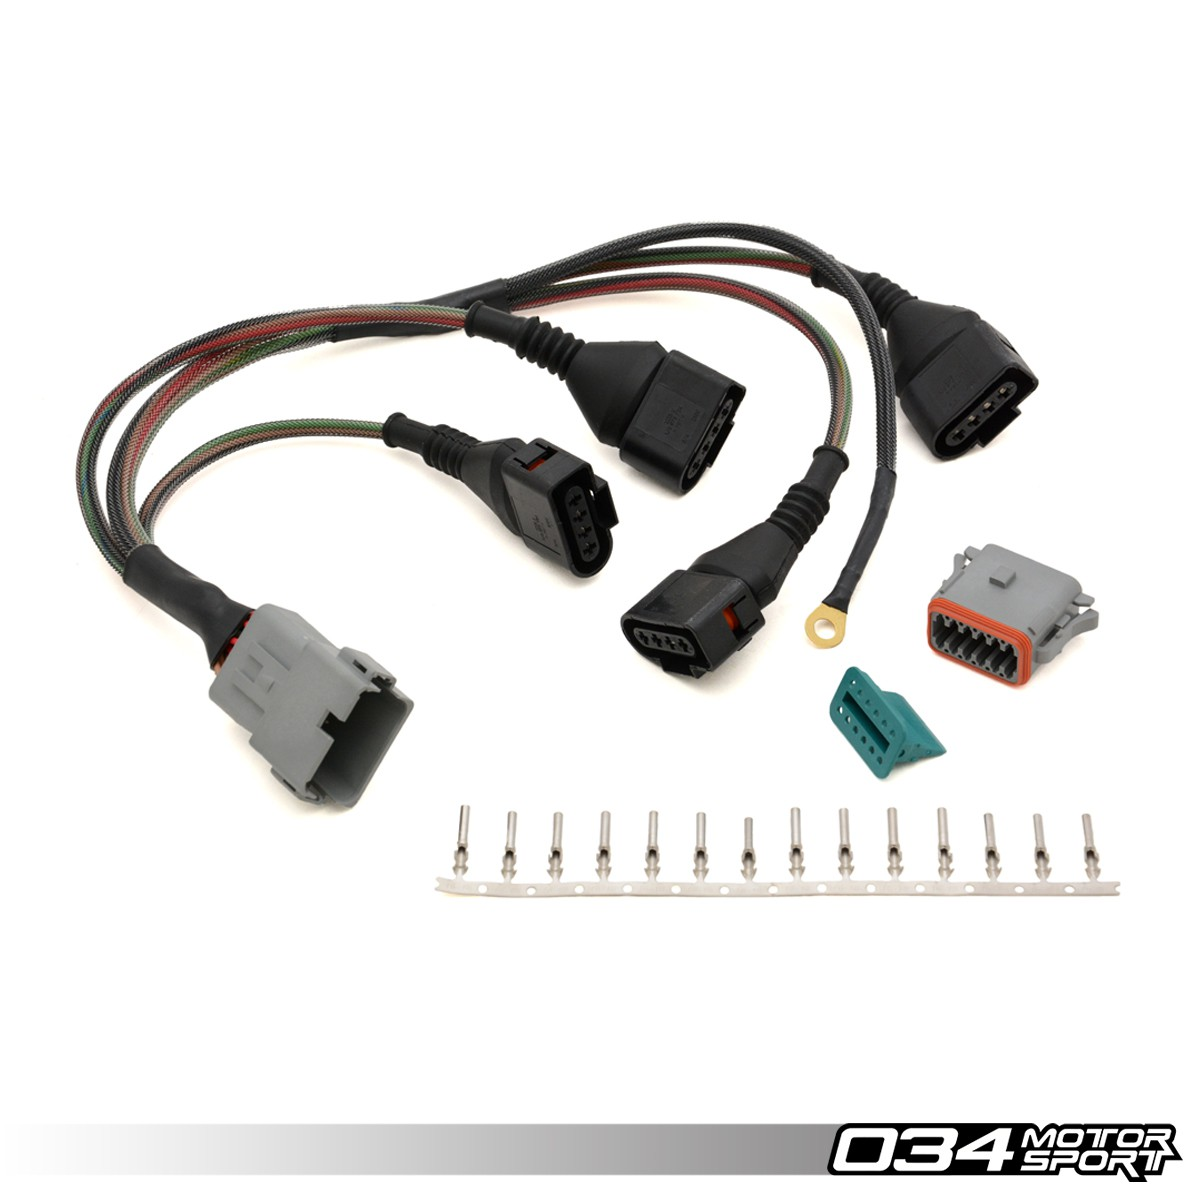 repair update harness audi volkswagen 18t with 4 wire coils 034motorsport 034 701 0004 2 repair update harness, audi volkswagen 1 8t with 4 wire coils how to repair a wiring harness at gsmportal.co